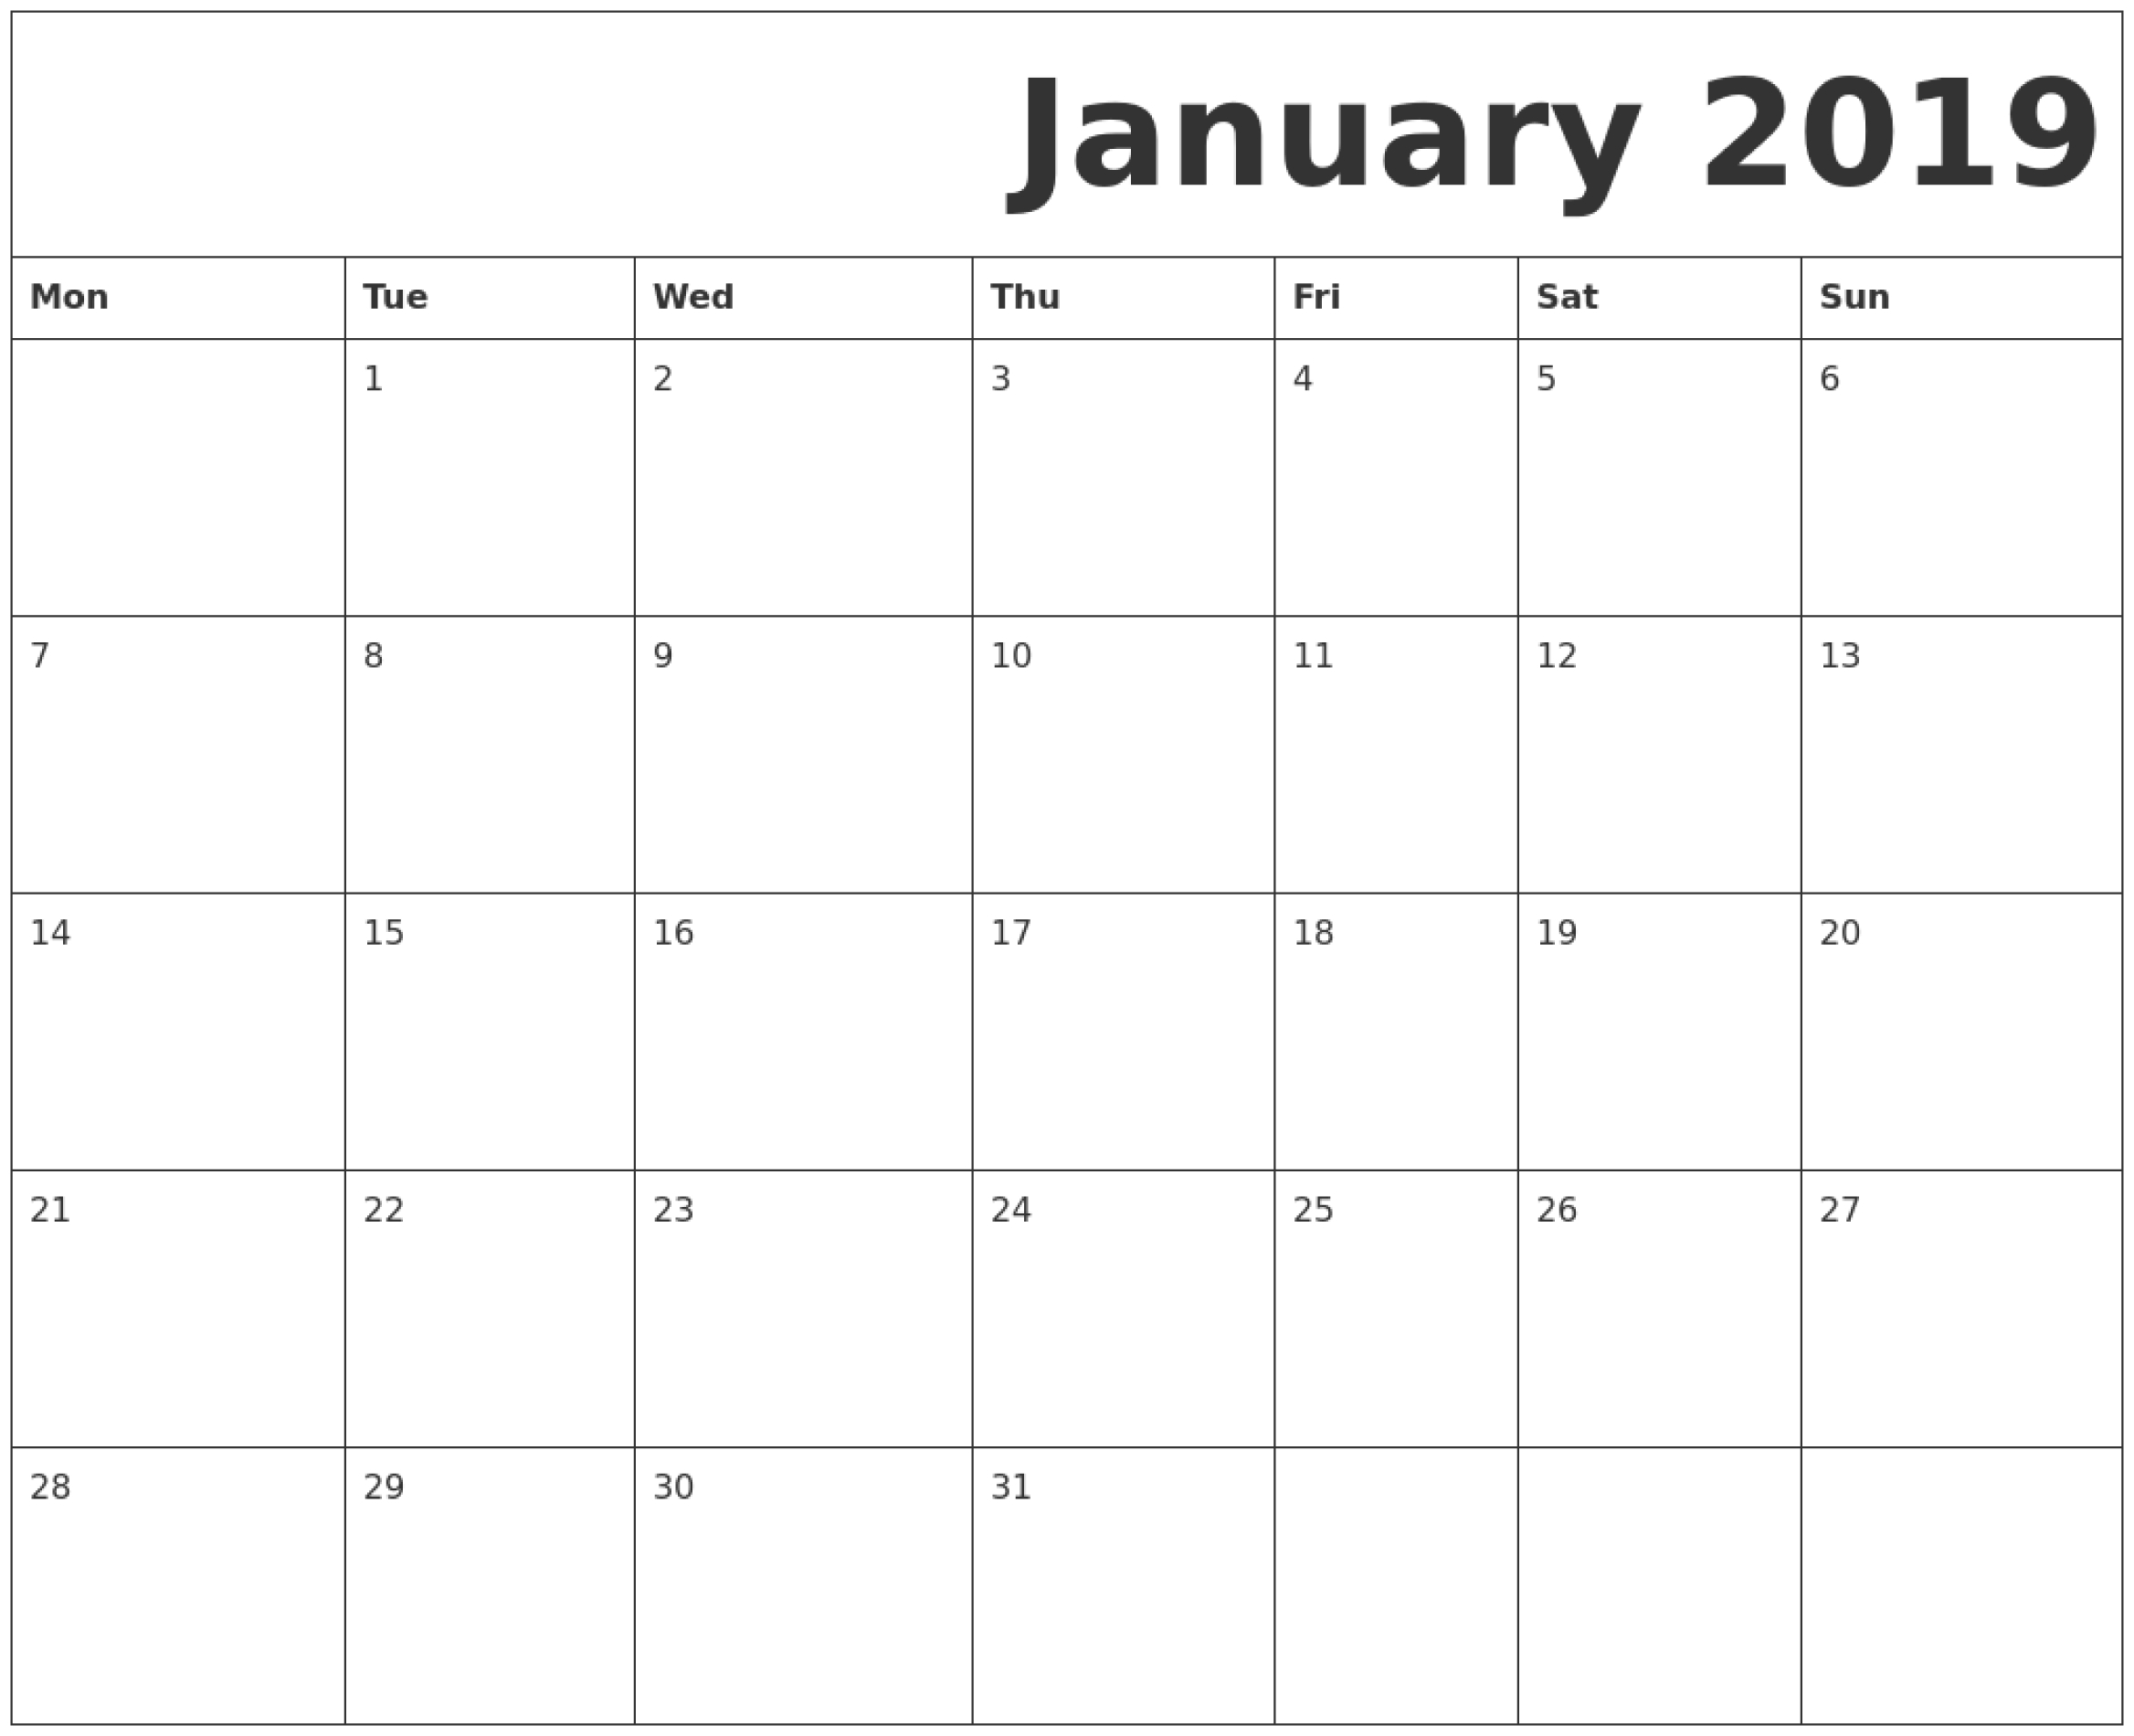 January 2019 Printable Calendar Monday Start. | January 2019-Free Blank Calender Montly Starting On Monday